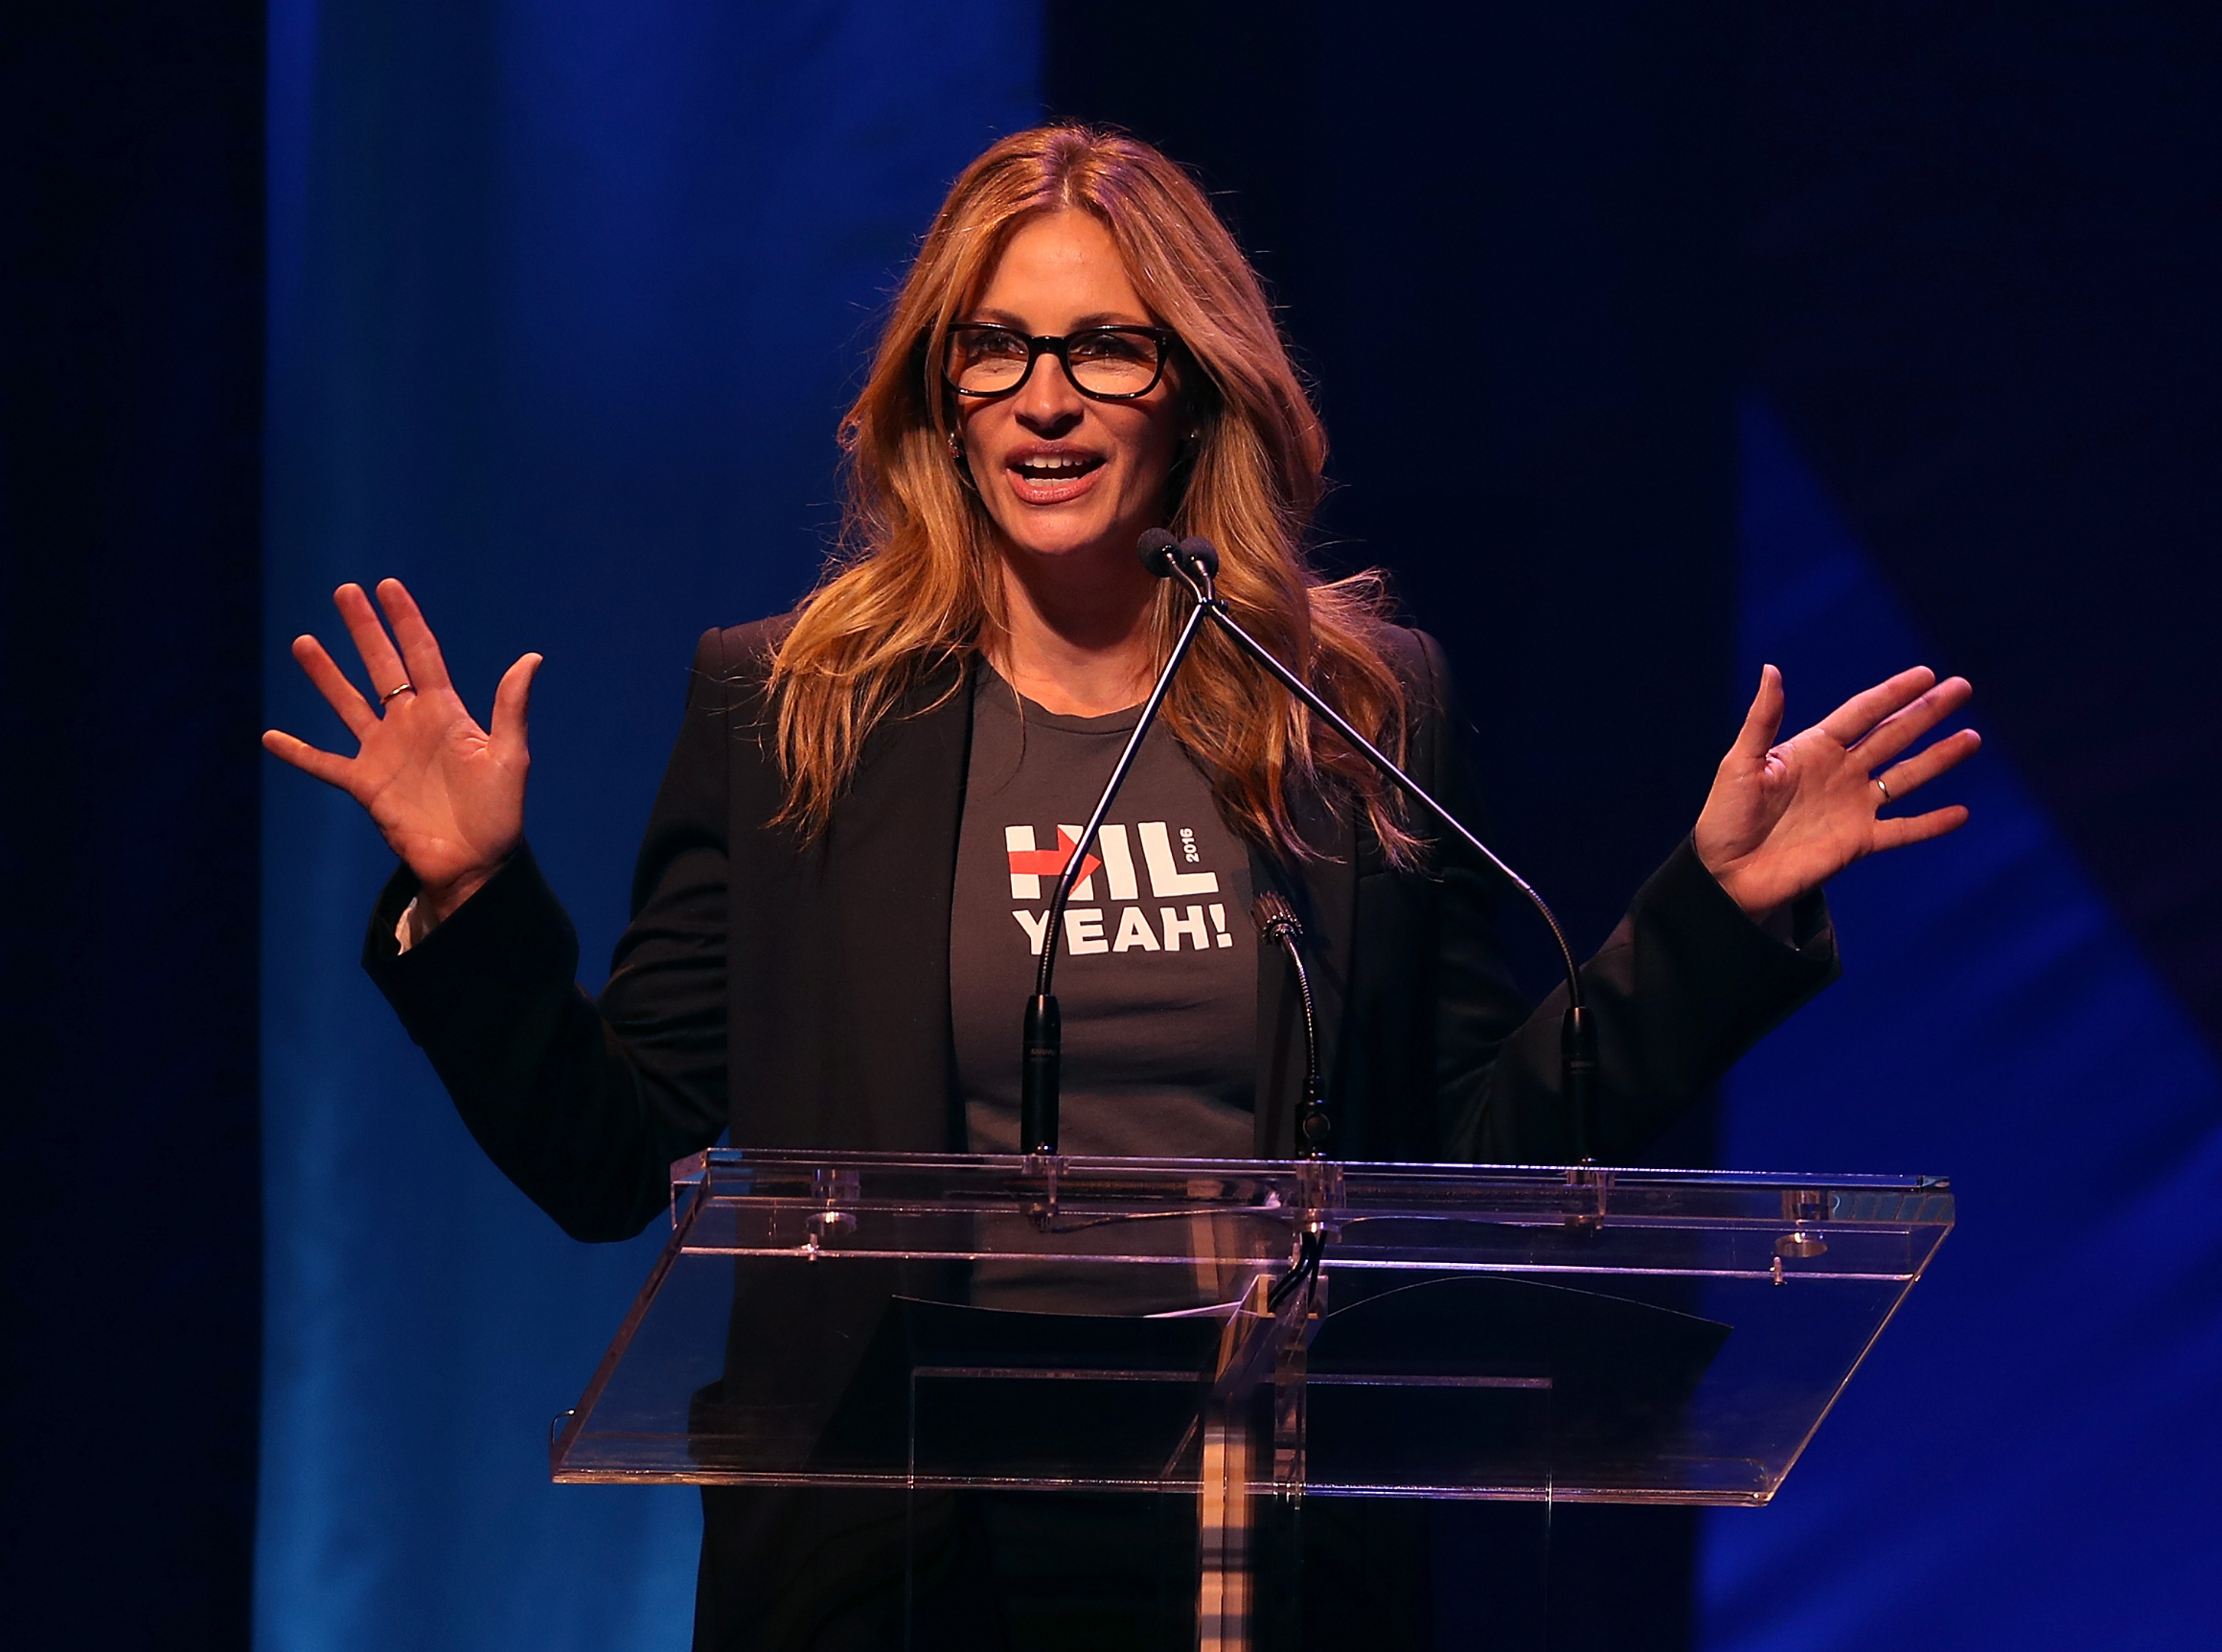 NEW YORK, NY - OCTOBER 17:  Actress Julia Roberts speaks during the Hillary Victory Fund - Stronger Together concert at St. James Theatre on October 17, 2016 in New York City. Broadway stars and celebrities performed during a fundraising concert for the Hillary Clinton campaign.  (Photo by Justin Sullivan/Getty Images)